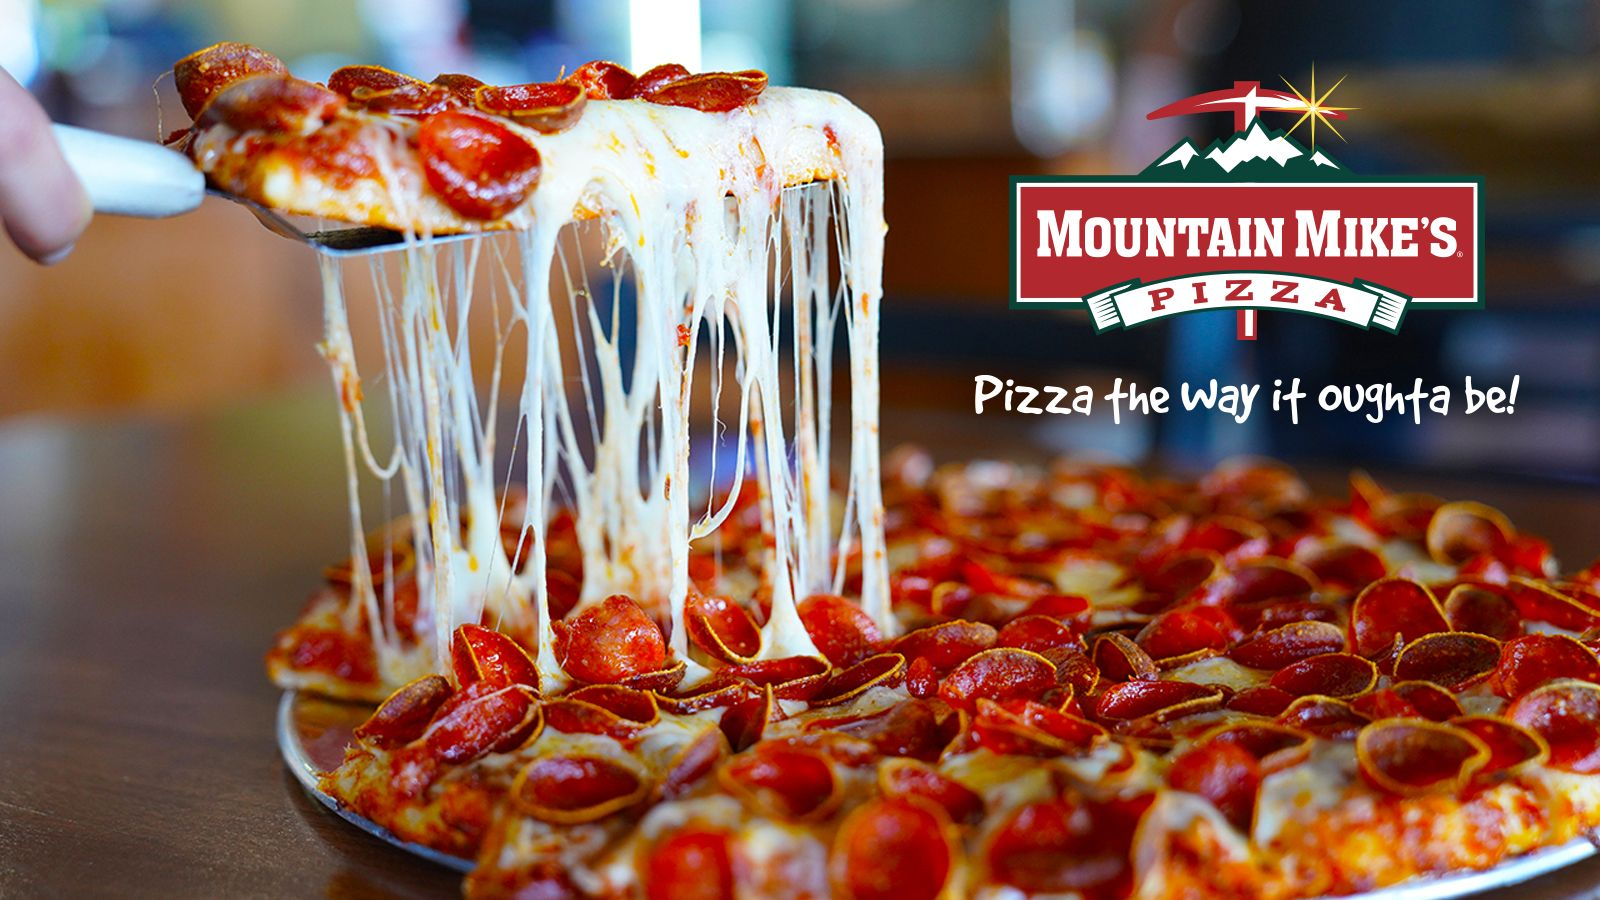 Mountain Mike's Pizza Announces Outstanding Q1 Results With SSS up 23.4%